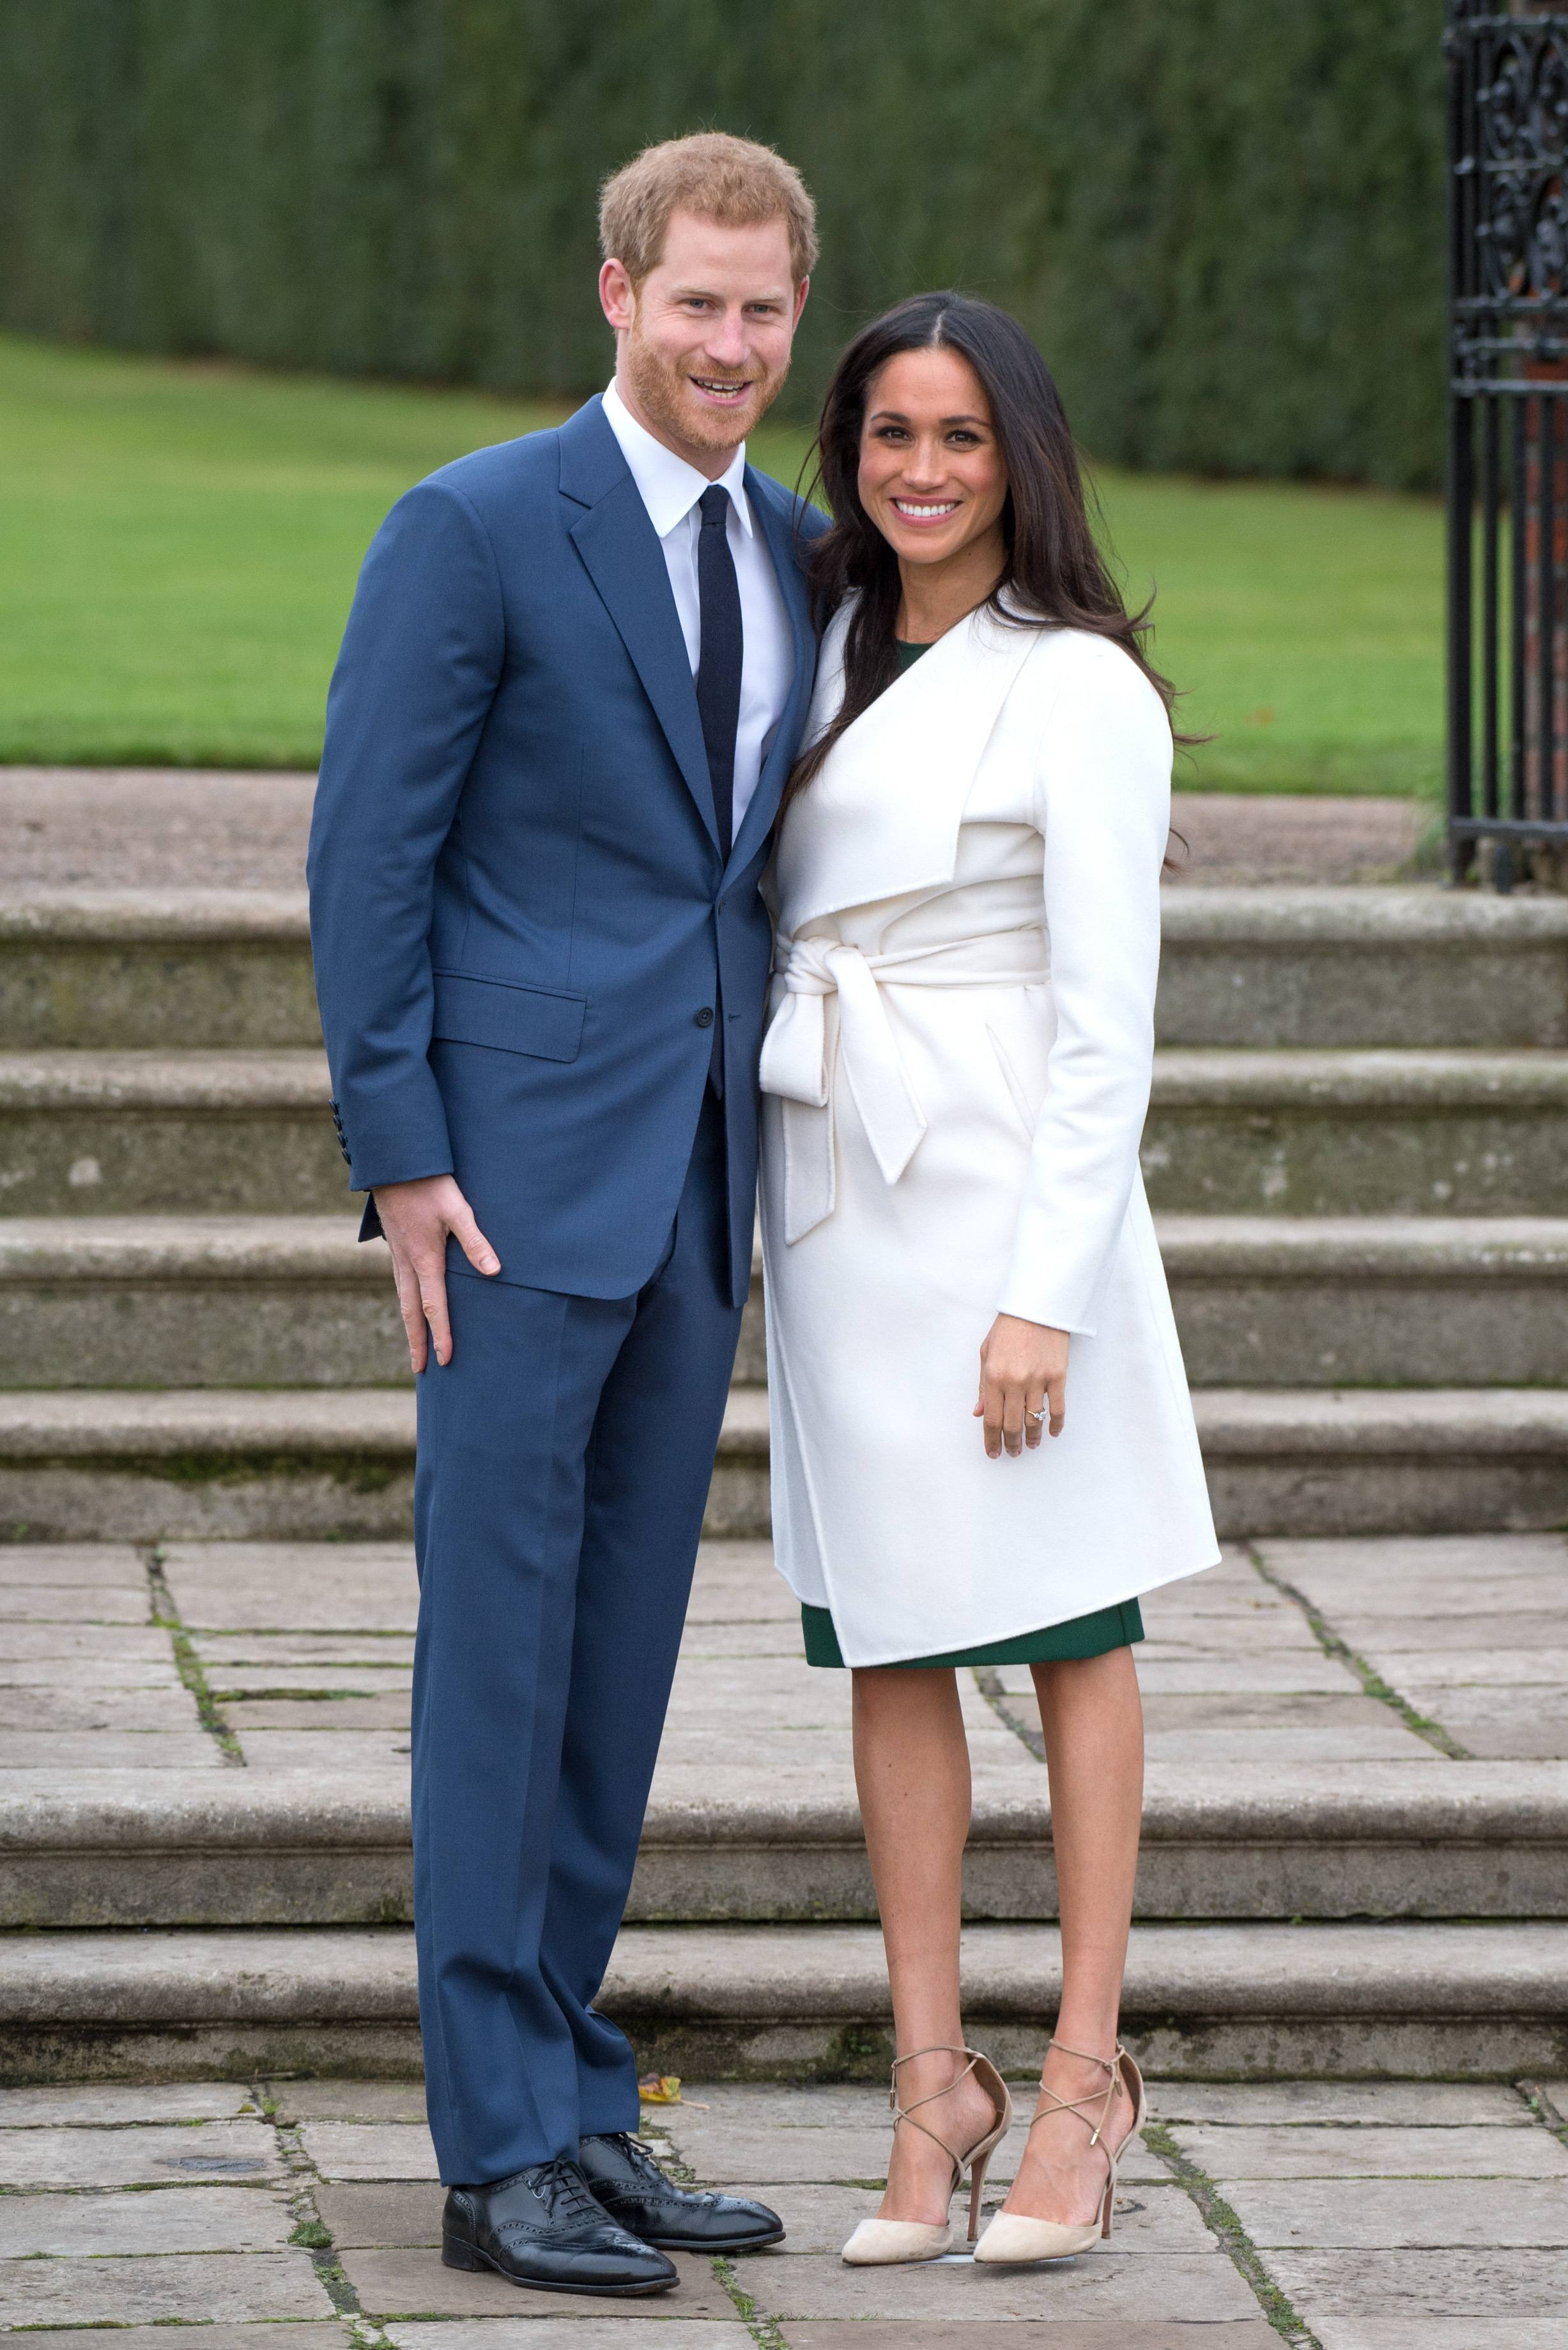 Meghan Markles Engagement Photo Dress Could Be a Hint At Her Wedding Gown Meghan Markles Engagement Photo Dress Could Be a Hint At Her Wedding Gown new pics